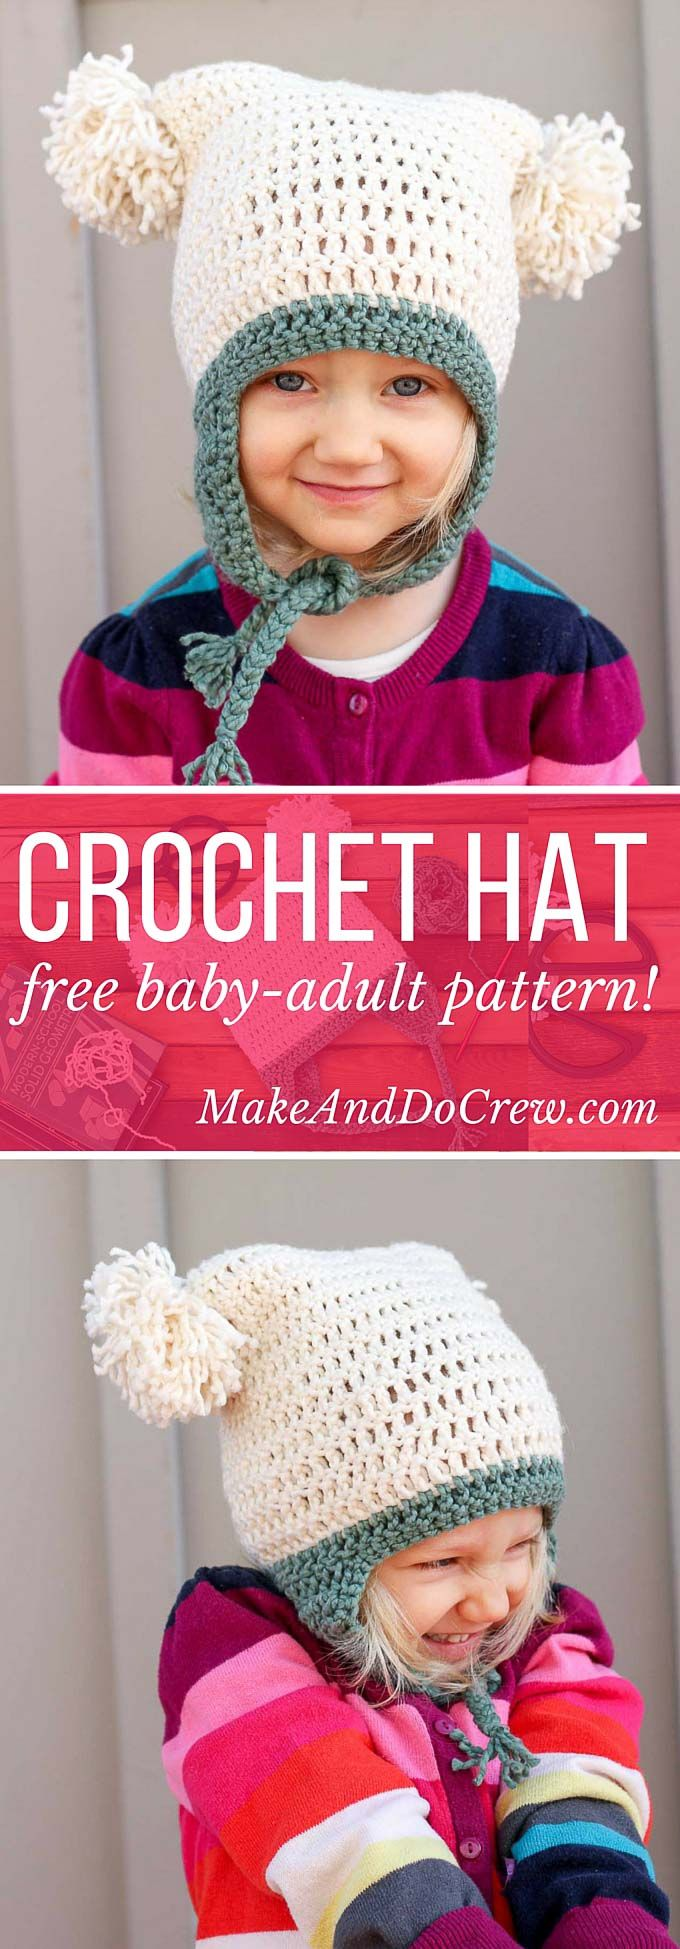 This free crochet beanie pattern is perfect for beginners because the skills involved aren't much harder than making a scarf. Free pom pom hat pattern in sizes baby (newborn), 3-6 months, 6-12 months, toddler/preschooler, child, teen/adult. | MakeAndDoCrew.com ༺✿Teresa Restegui http://www.pinterest.com/teretegui/✿༻